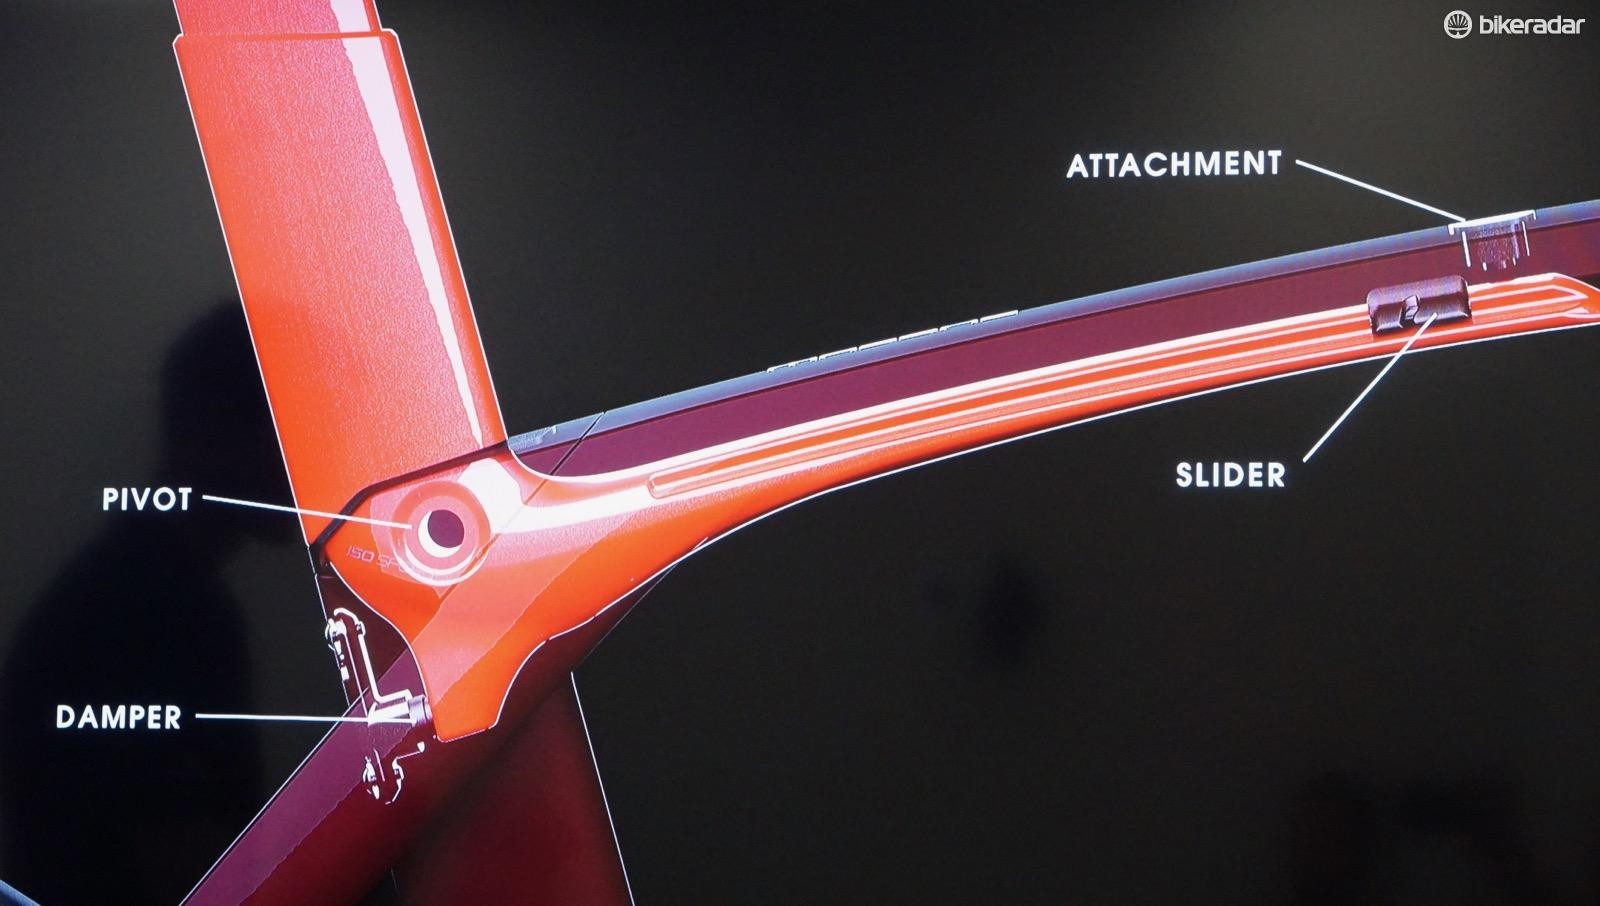 The slider (at right) controls the amount of compliance. The design is similar to the current Domane, but in the top tube instead of the down tube. Also different is the presence of an elastomer rebound damper